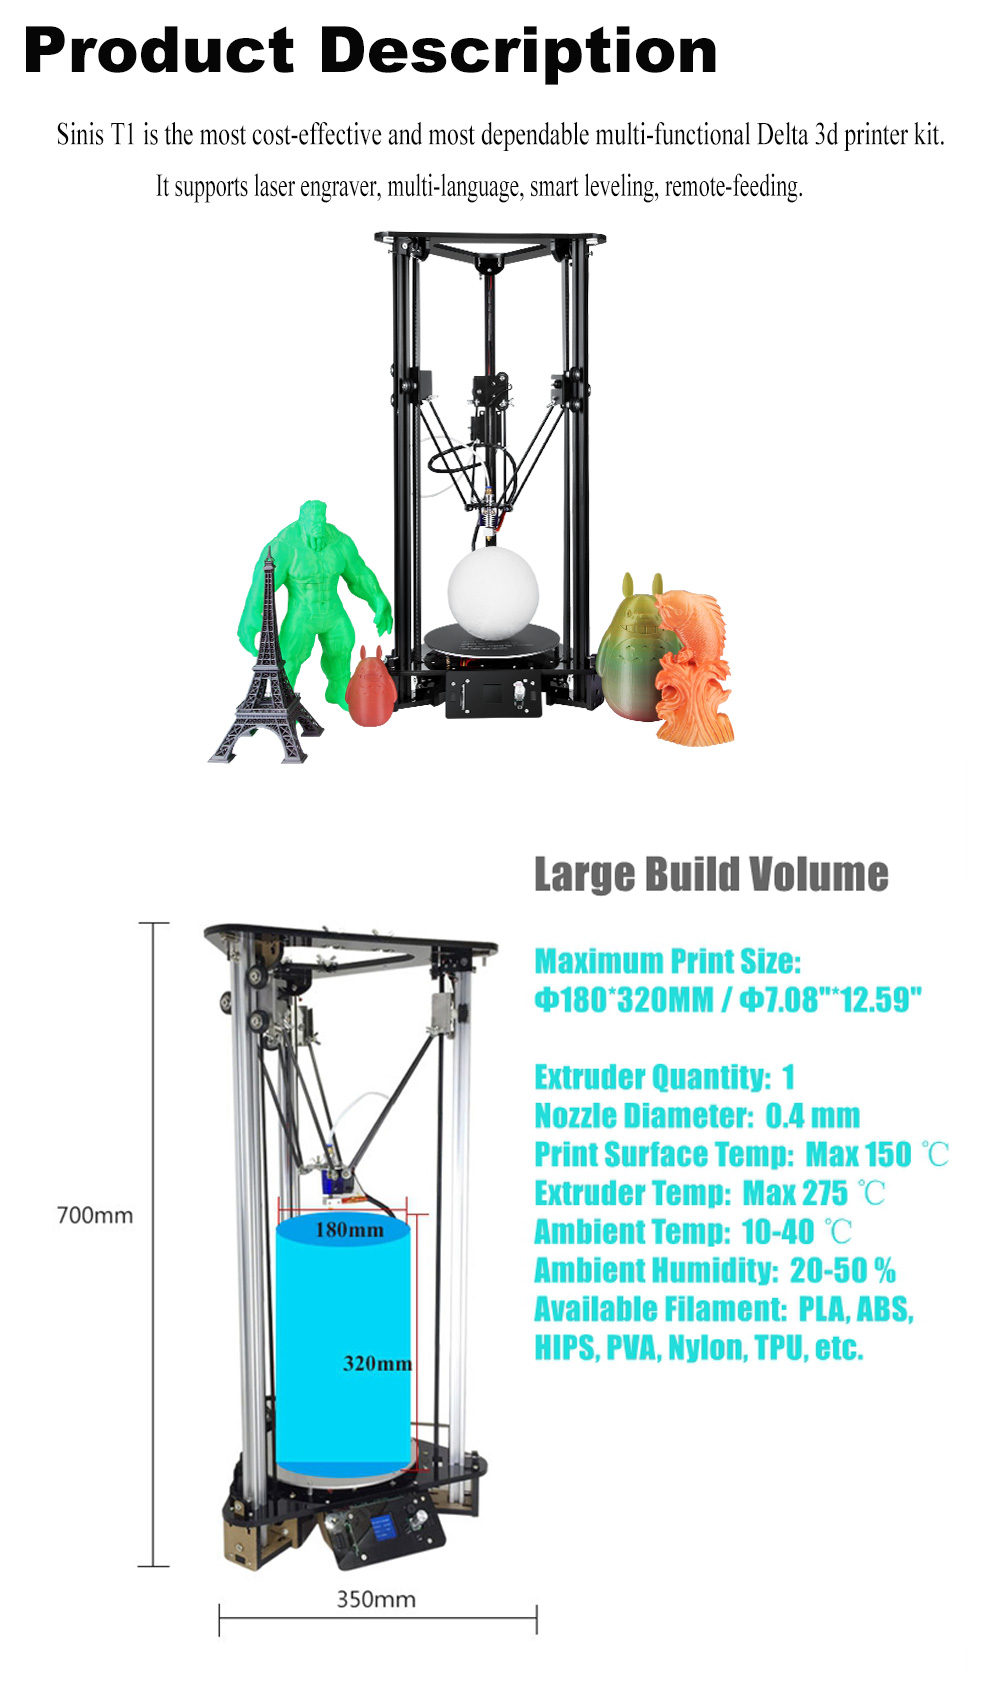 China Digital Personal 3d Printer Smart Leveling 3d Desktop Printer Delta 3D Printer Kit